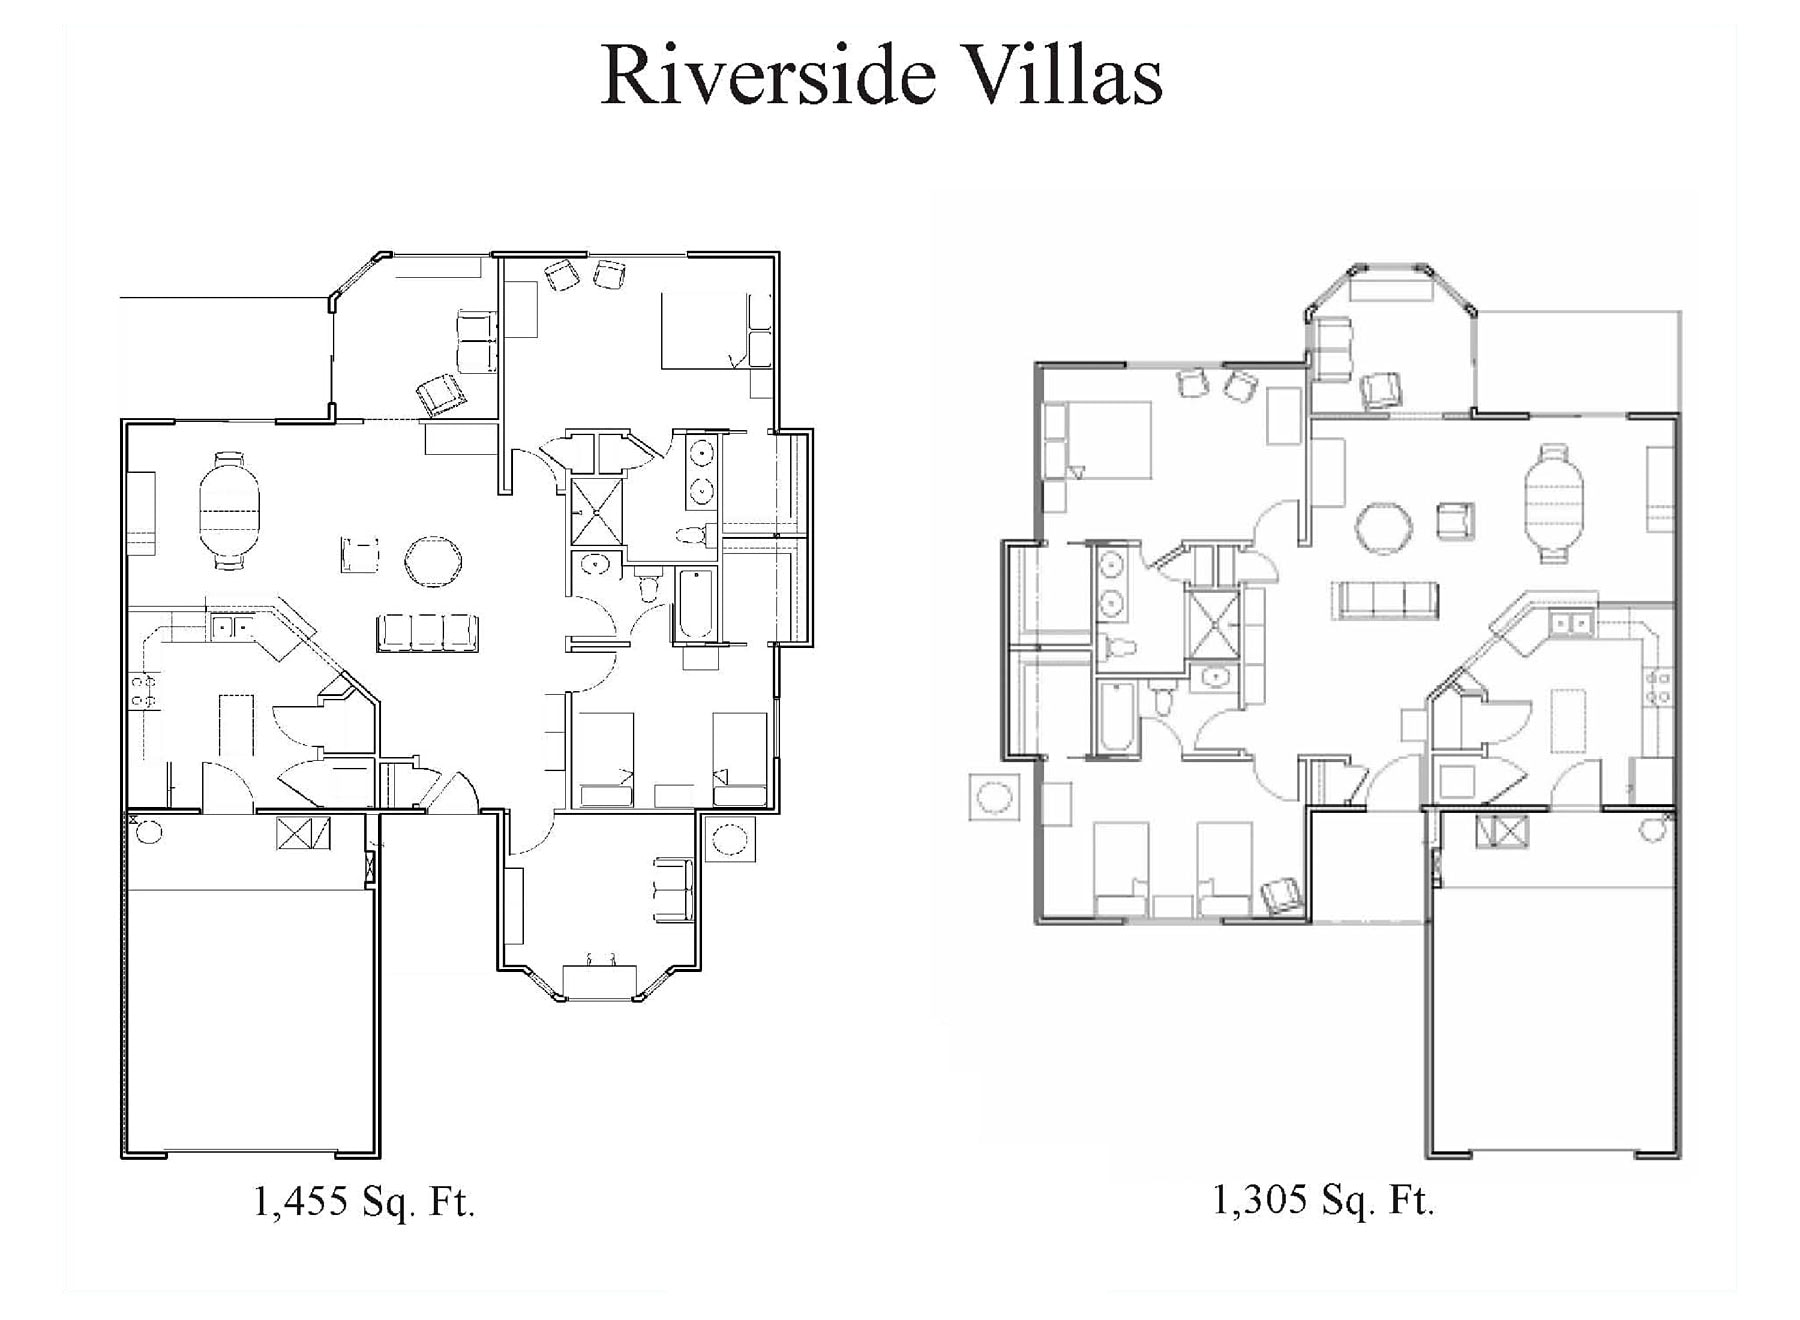 Riverside Villas Floor Plan